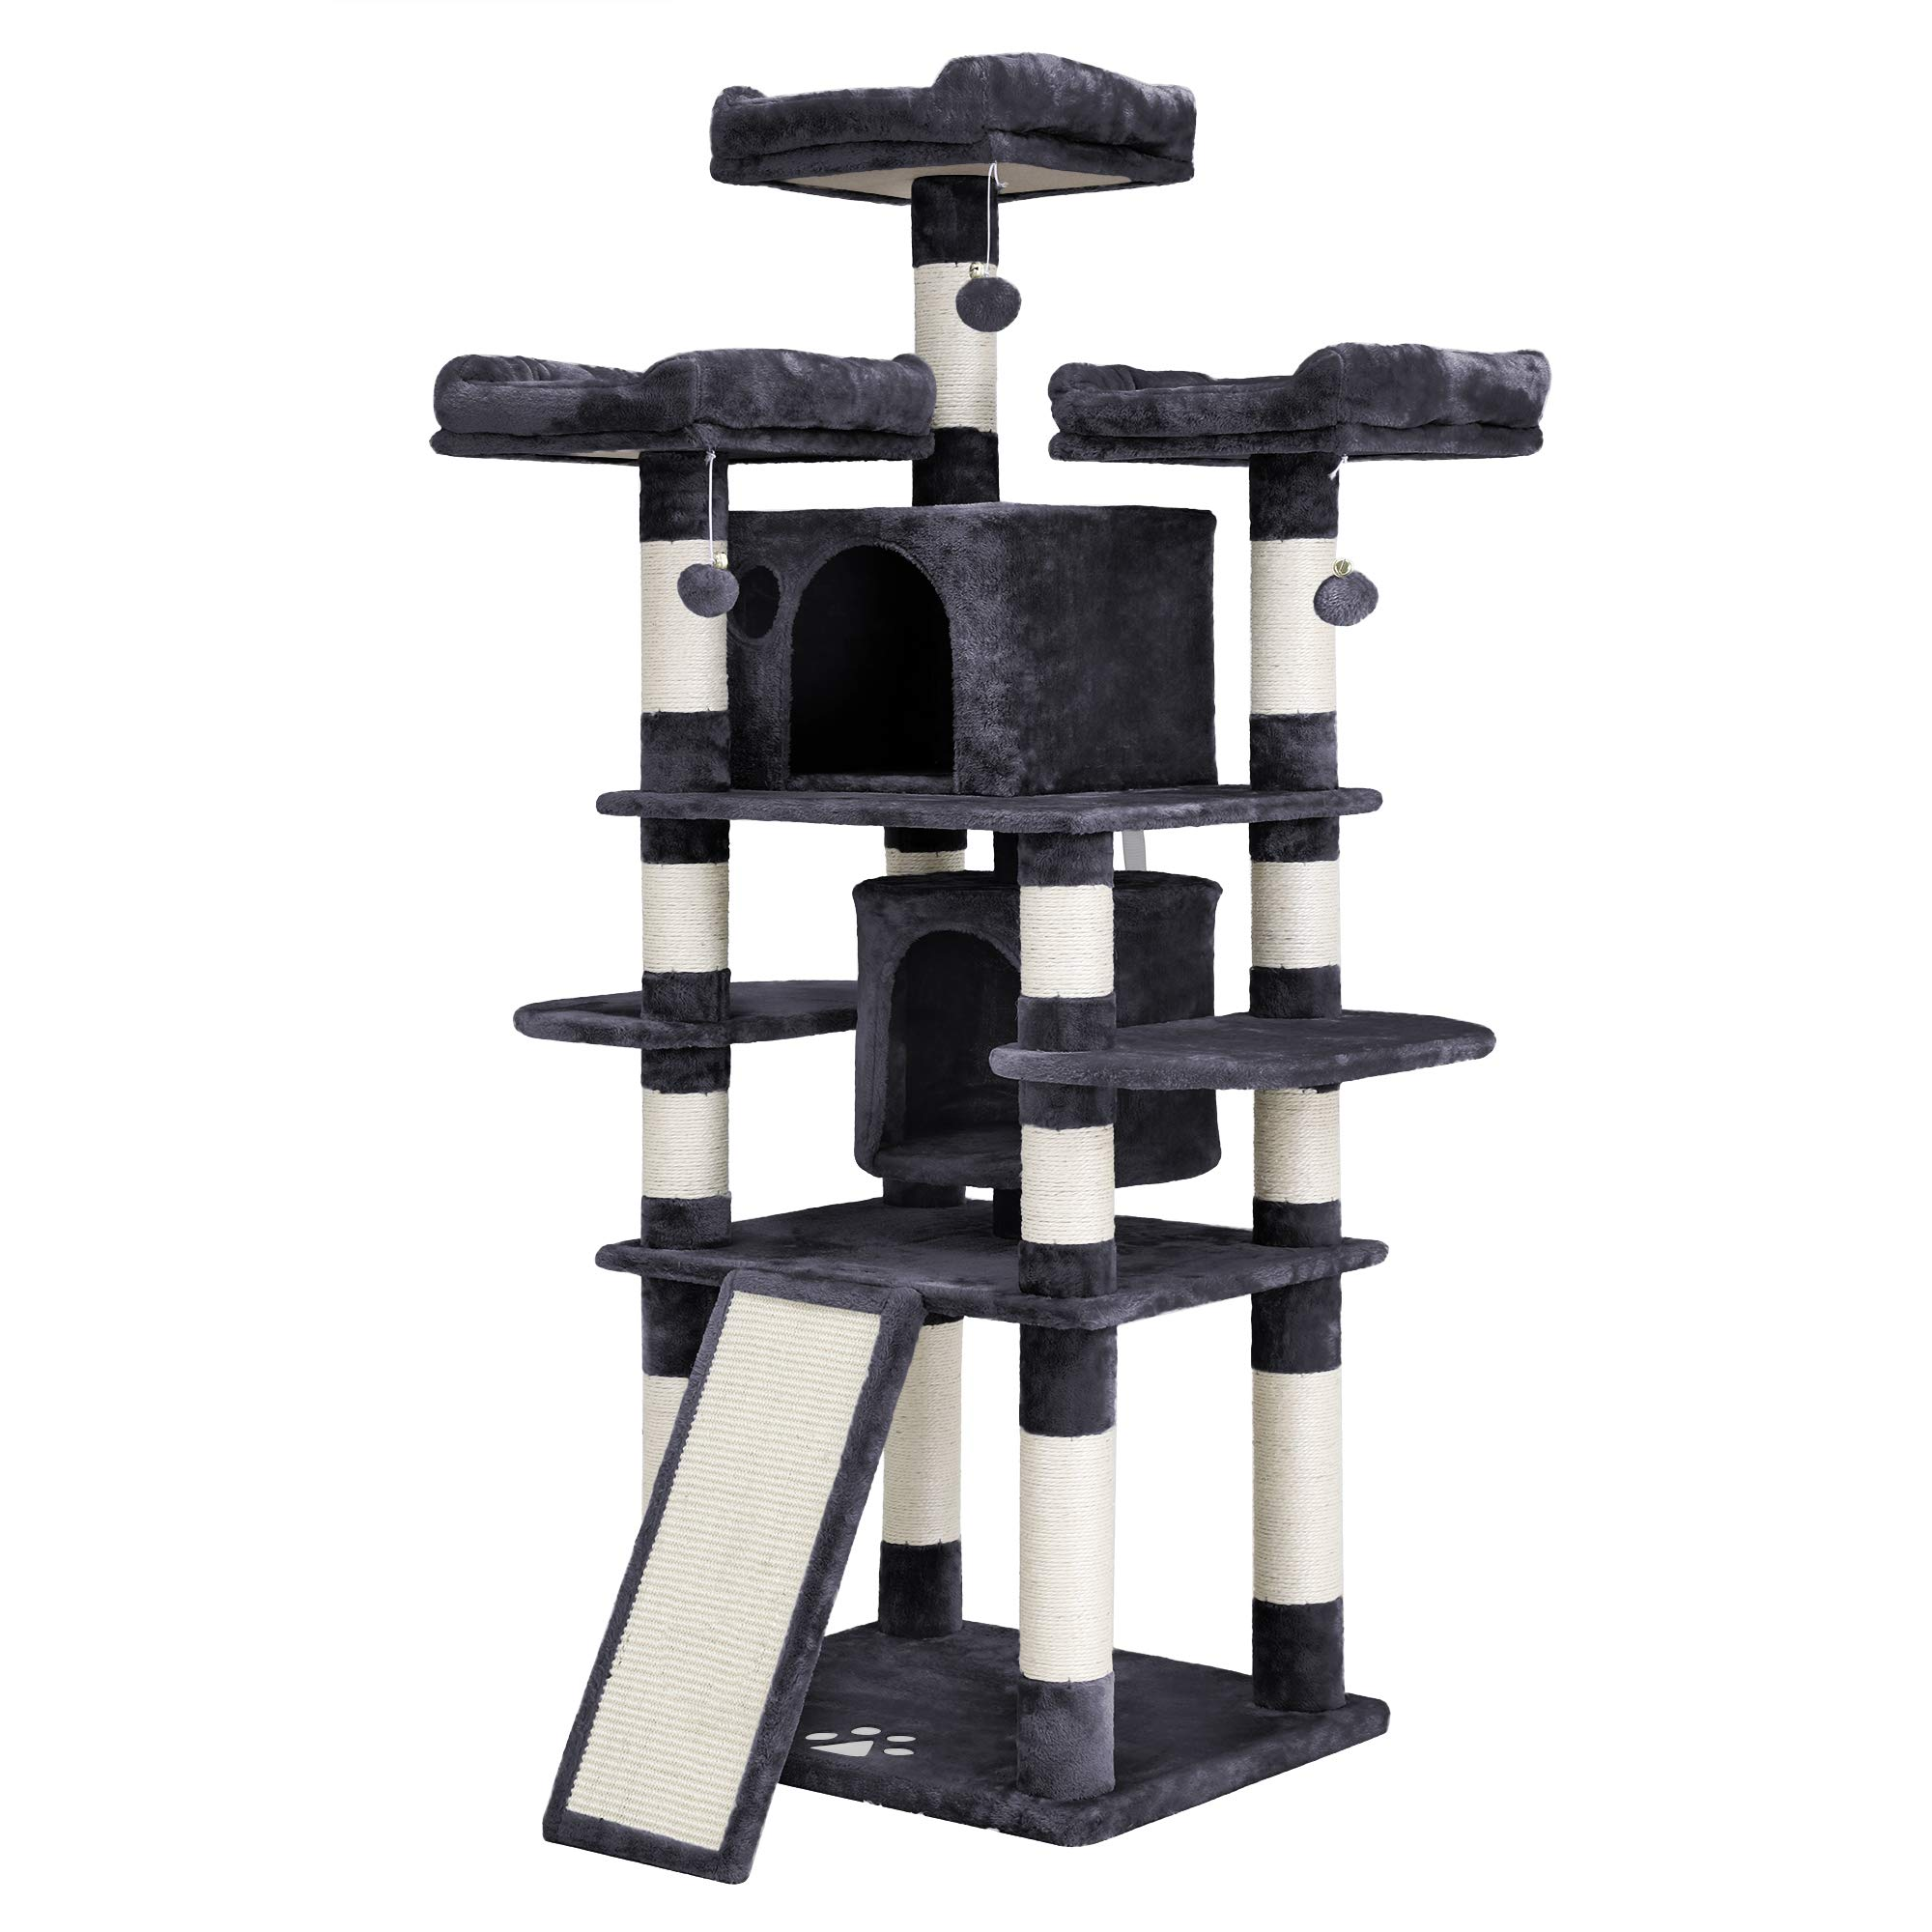 FEANDREA 67 inches Multi-Level Cat Tree for Large Cats, with Cozy Perches, Stable UPCT18G by FEANDREA